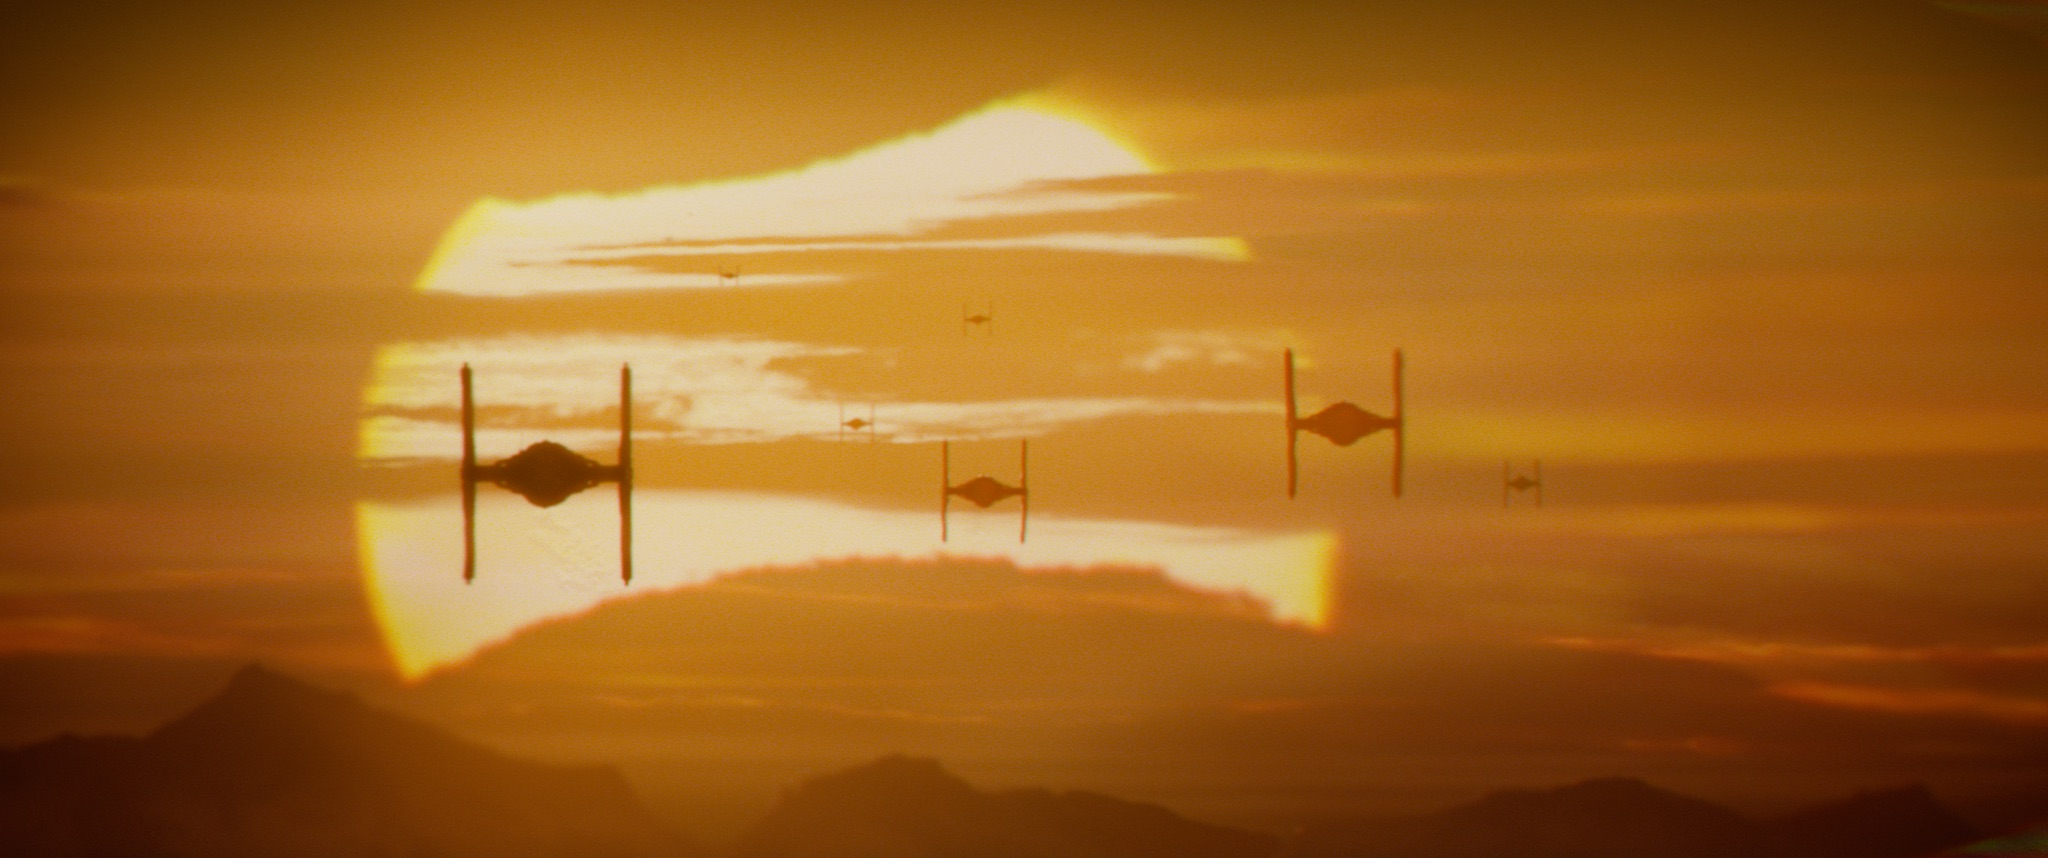 The Force Awakens - TIE Fighters